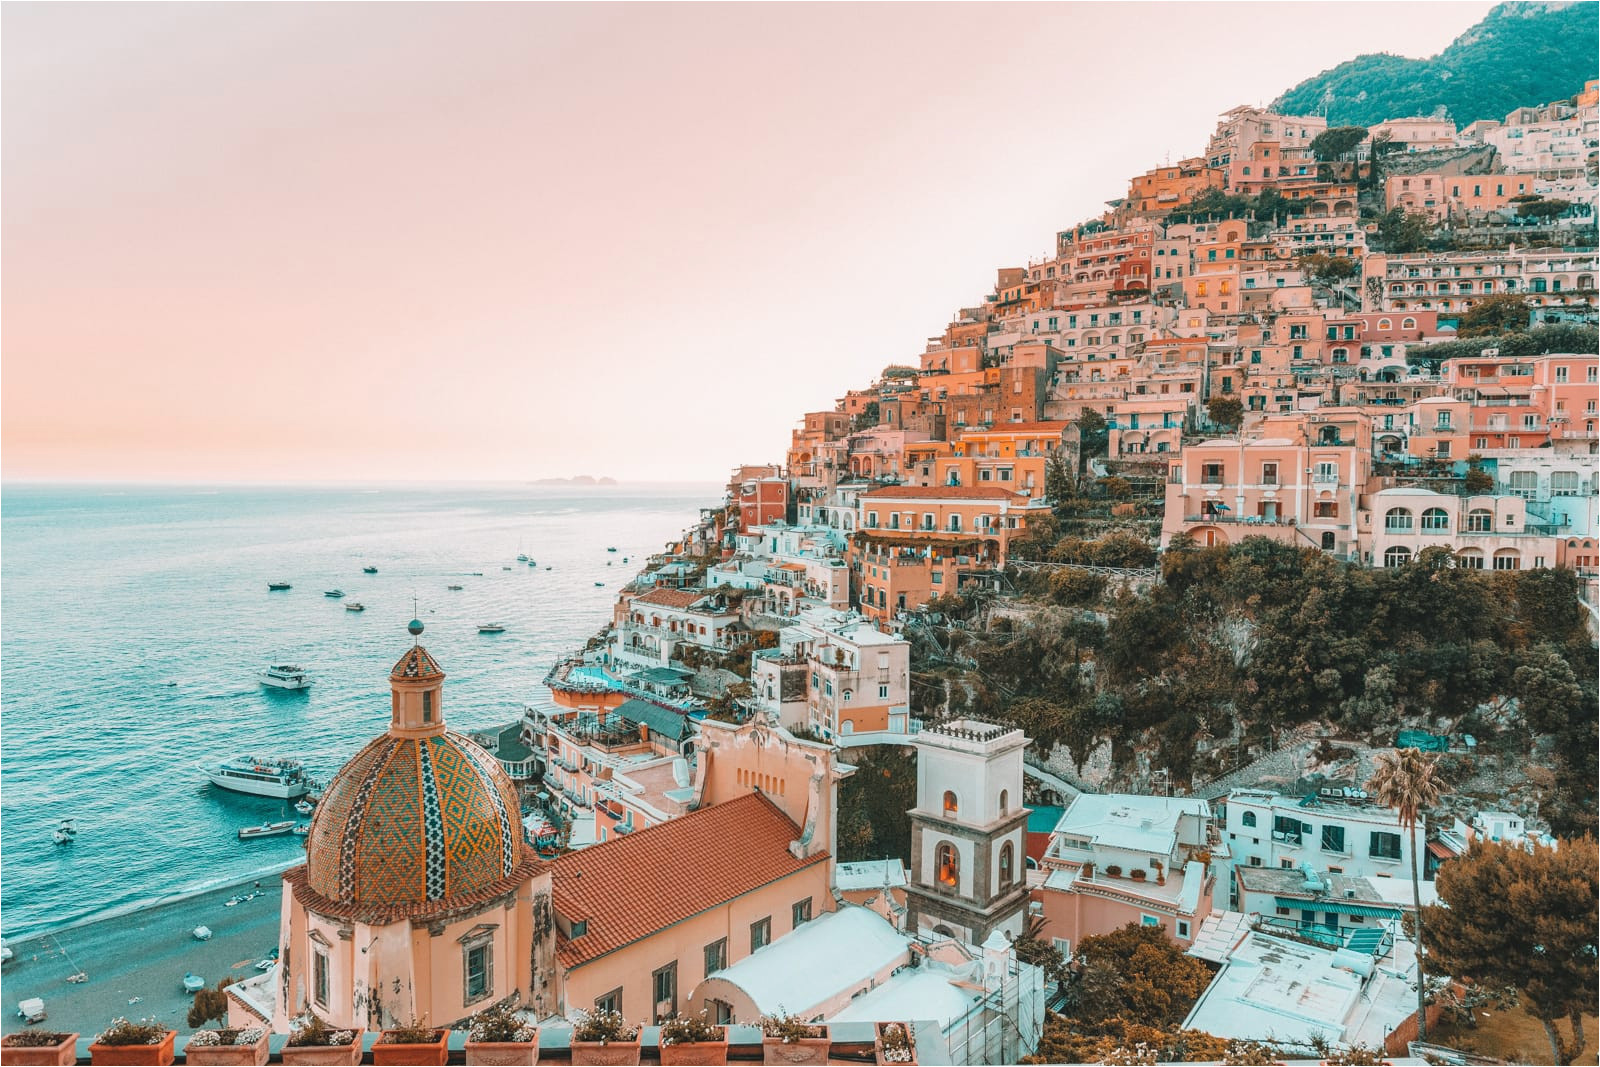 12 beautiful towns in southern italy that you must visit hand